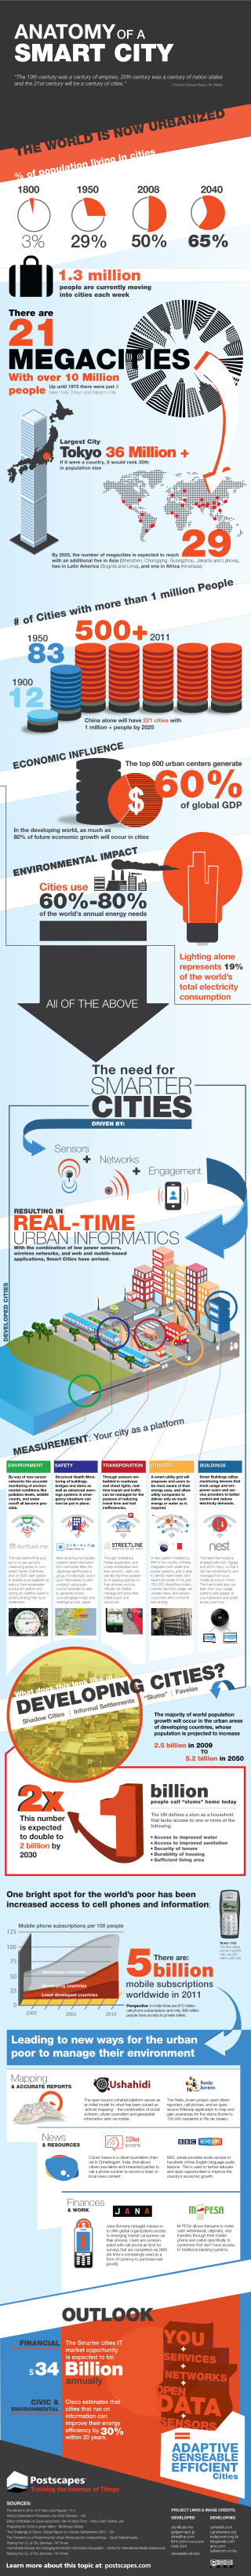 An infographic showing how technology can be applied in urban settings to create cities that work better for their residents.